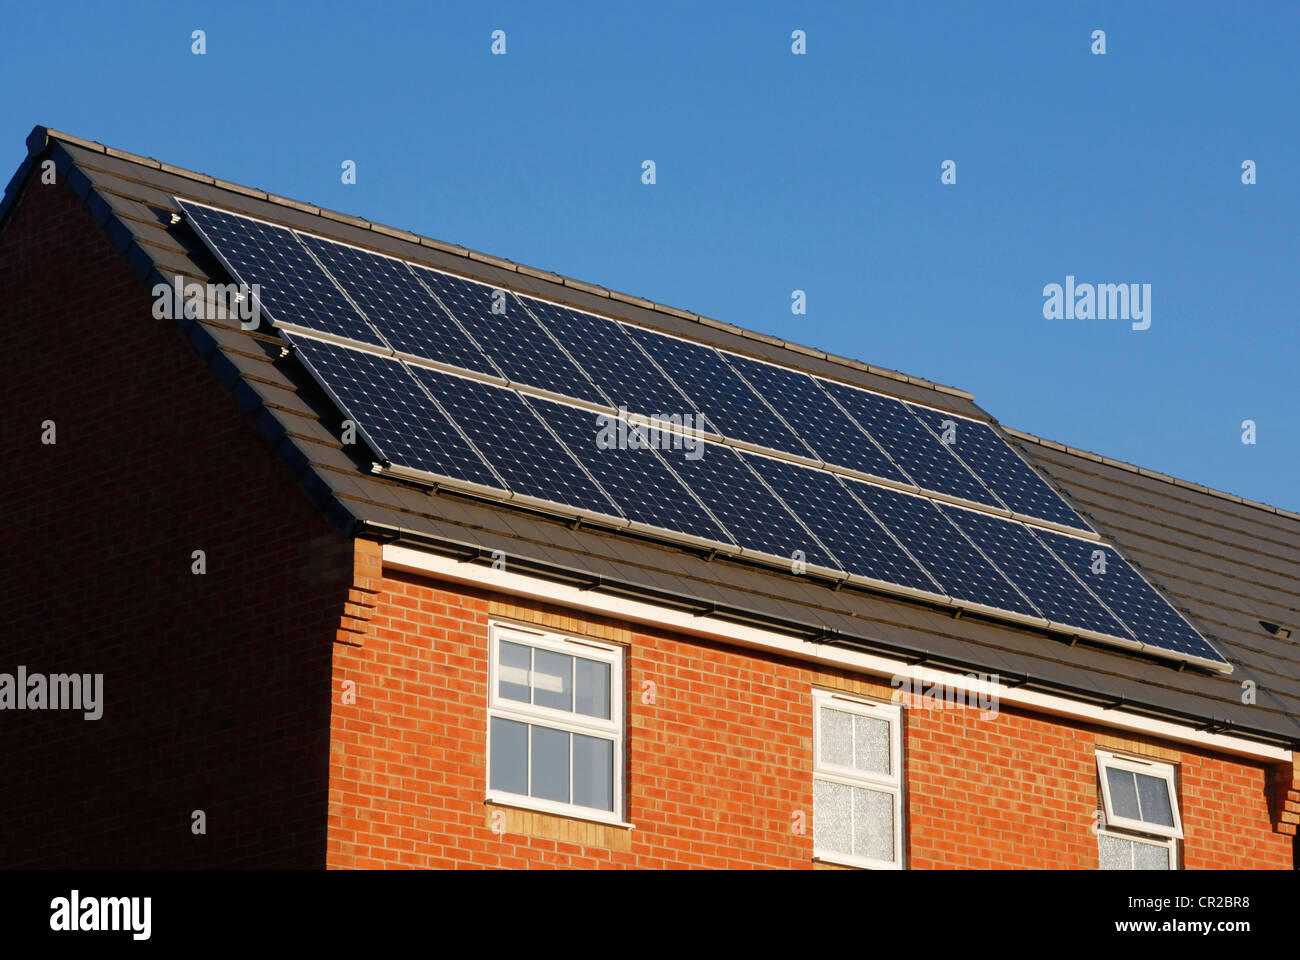 Modern house with solar power panels on the roof. - Stock Image